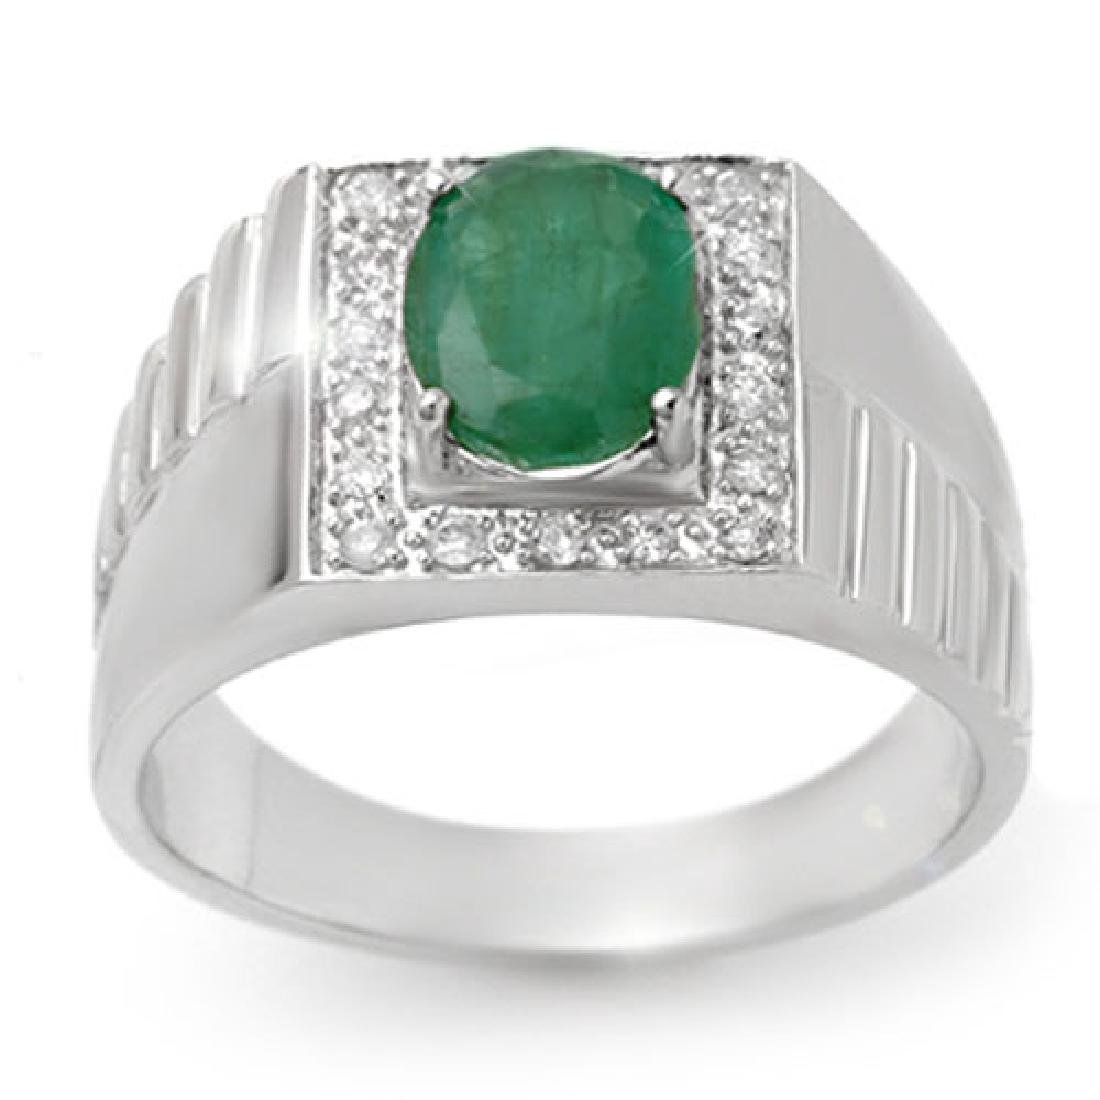 2.25 CTW Emerald & Diamond Men's Ring 10K White Gold